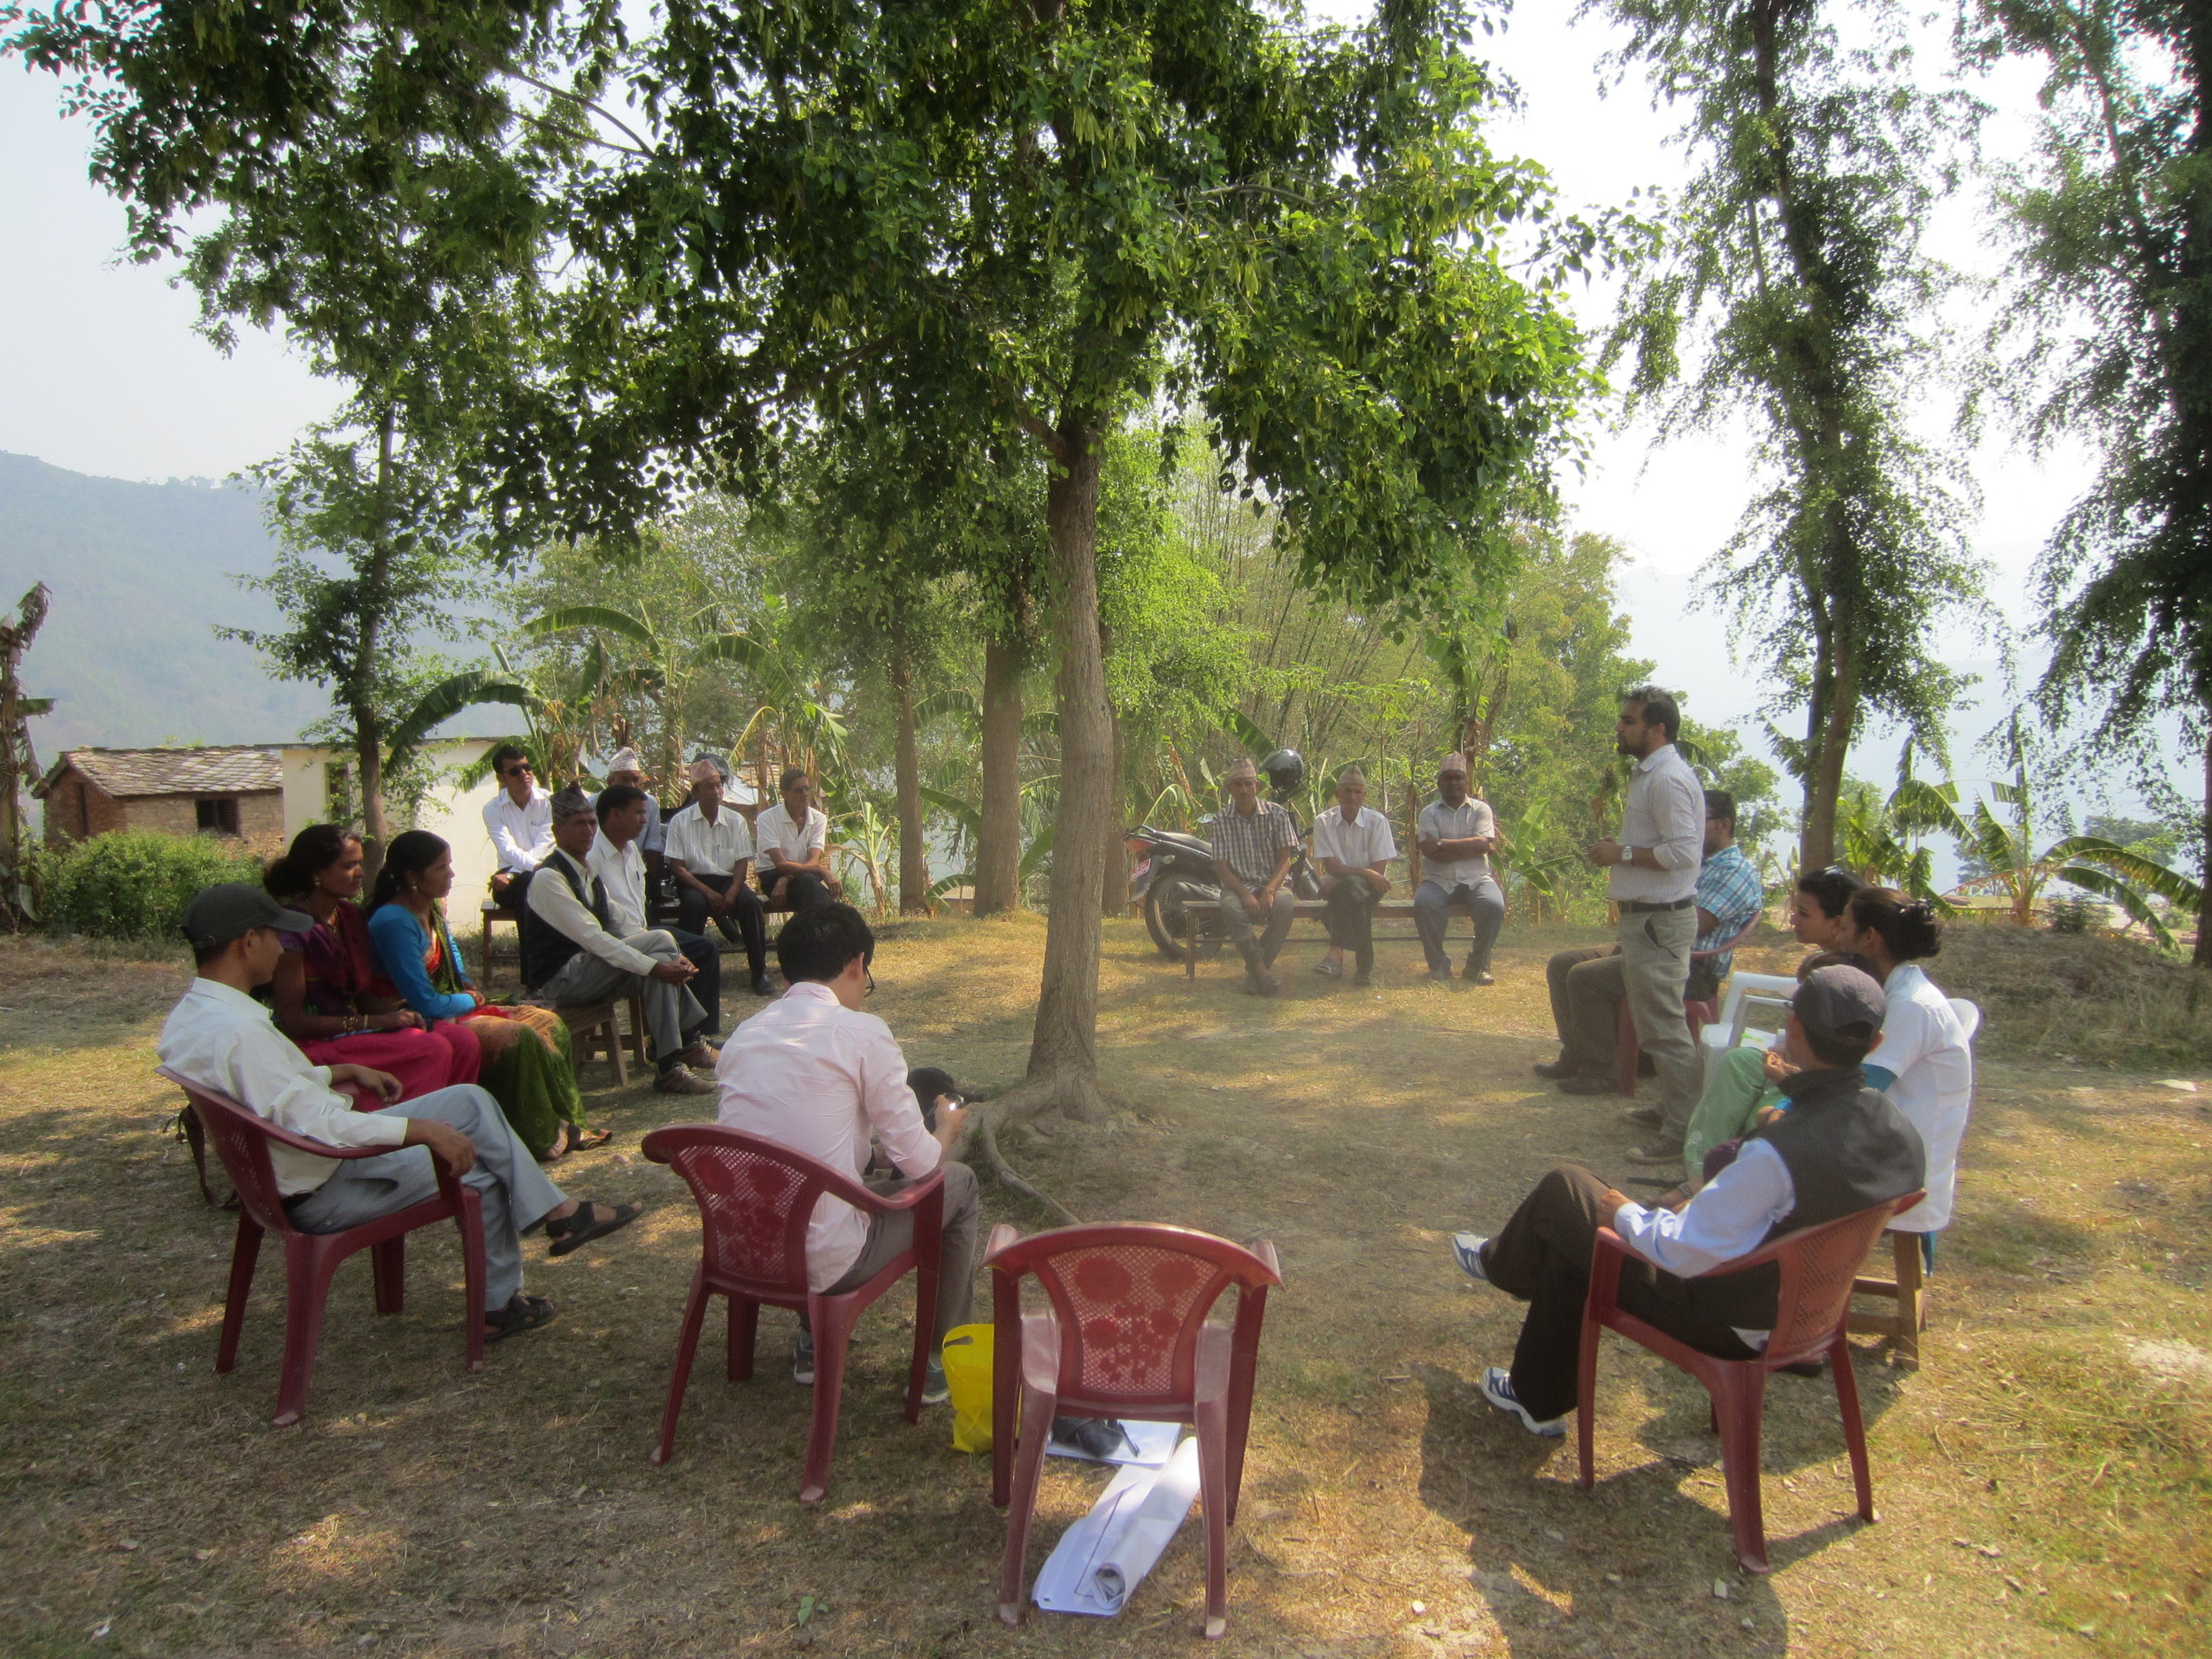 Amrit Banstola from Possible leading a community meeting to discuss the solar system at Shrikot Health Clinict